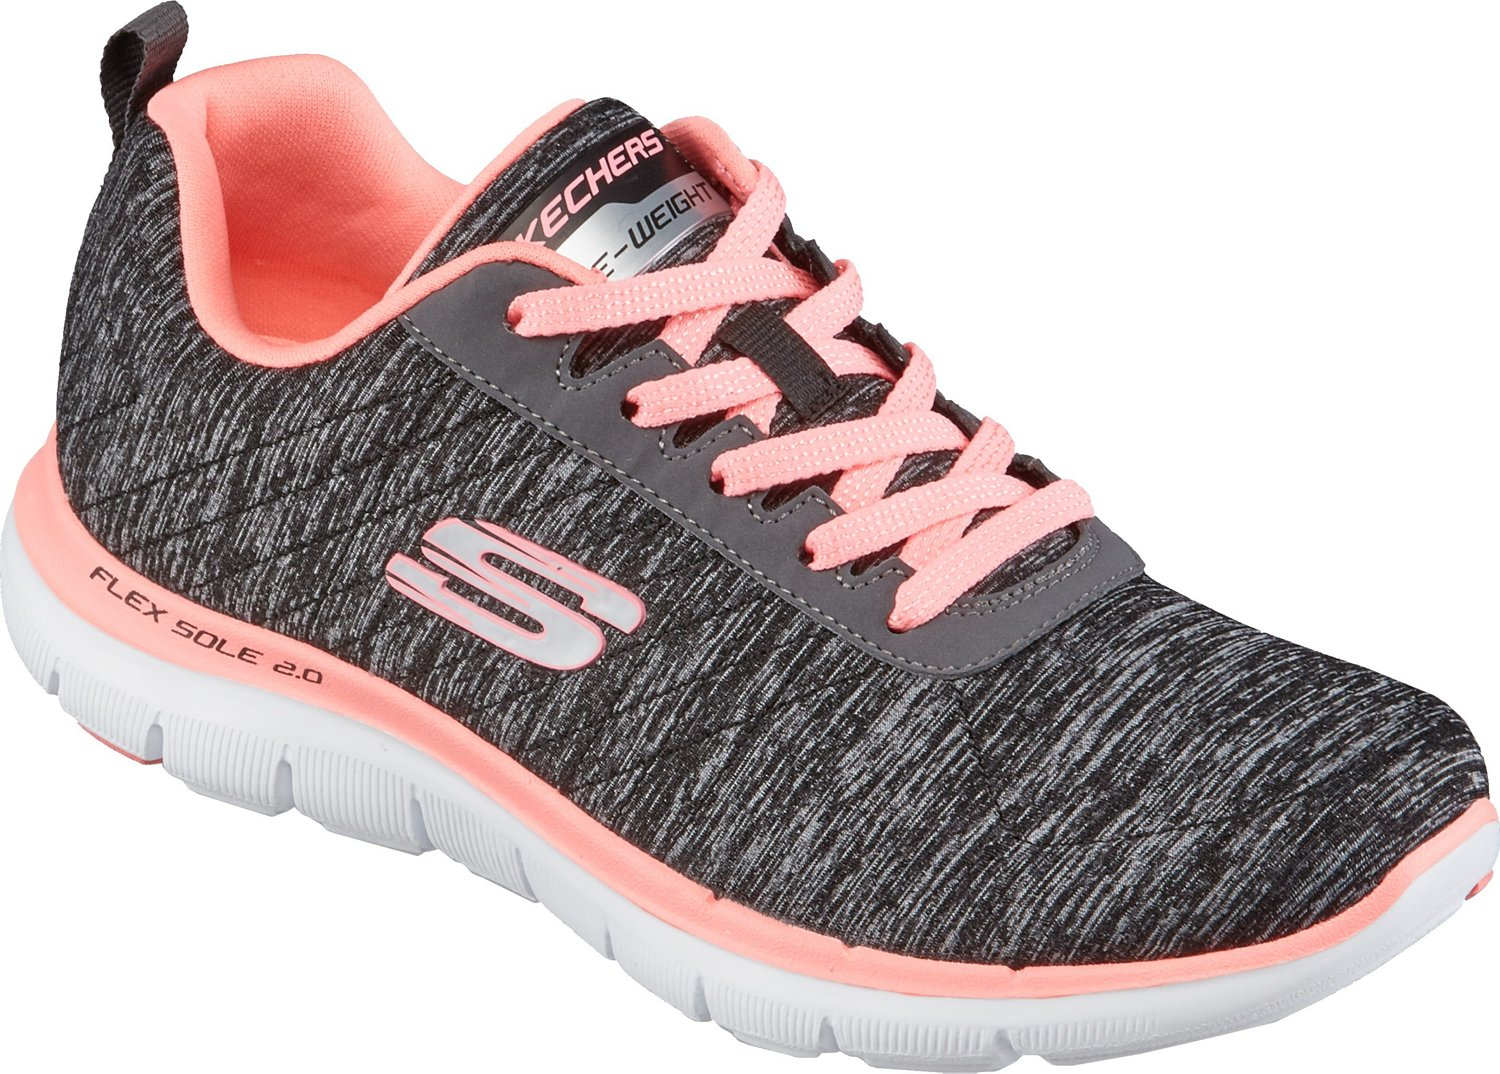 Display product reviews for SKECHERS Women s Flex Appeal 2.0 Training Shoes f0263461f